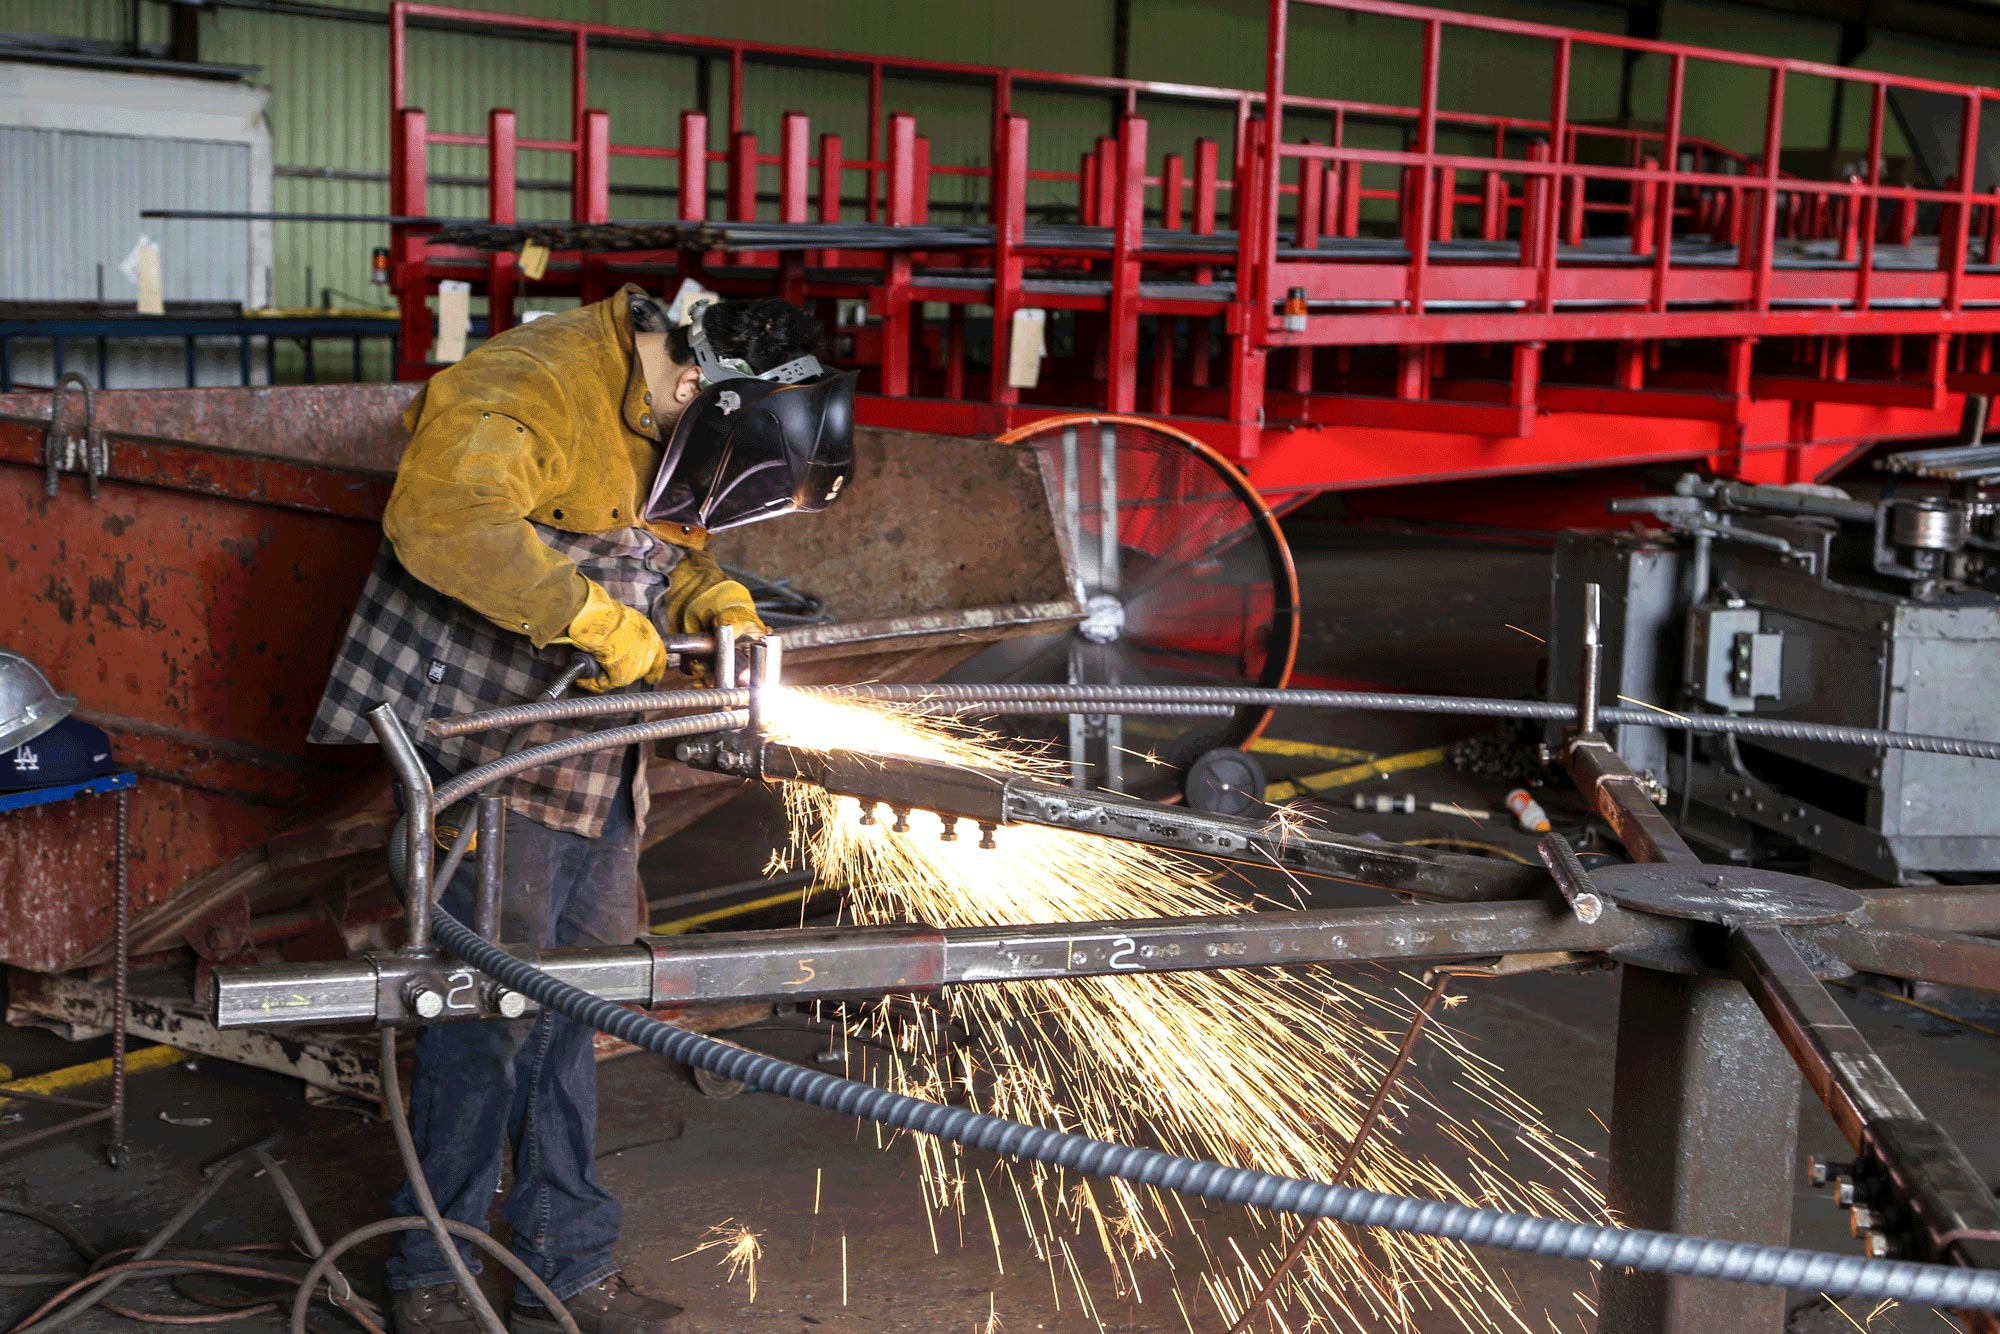 Sparks flying while a work cuts through steel.